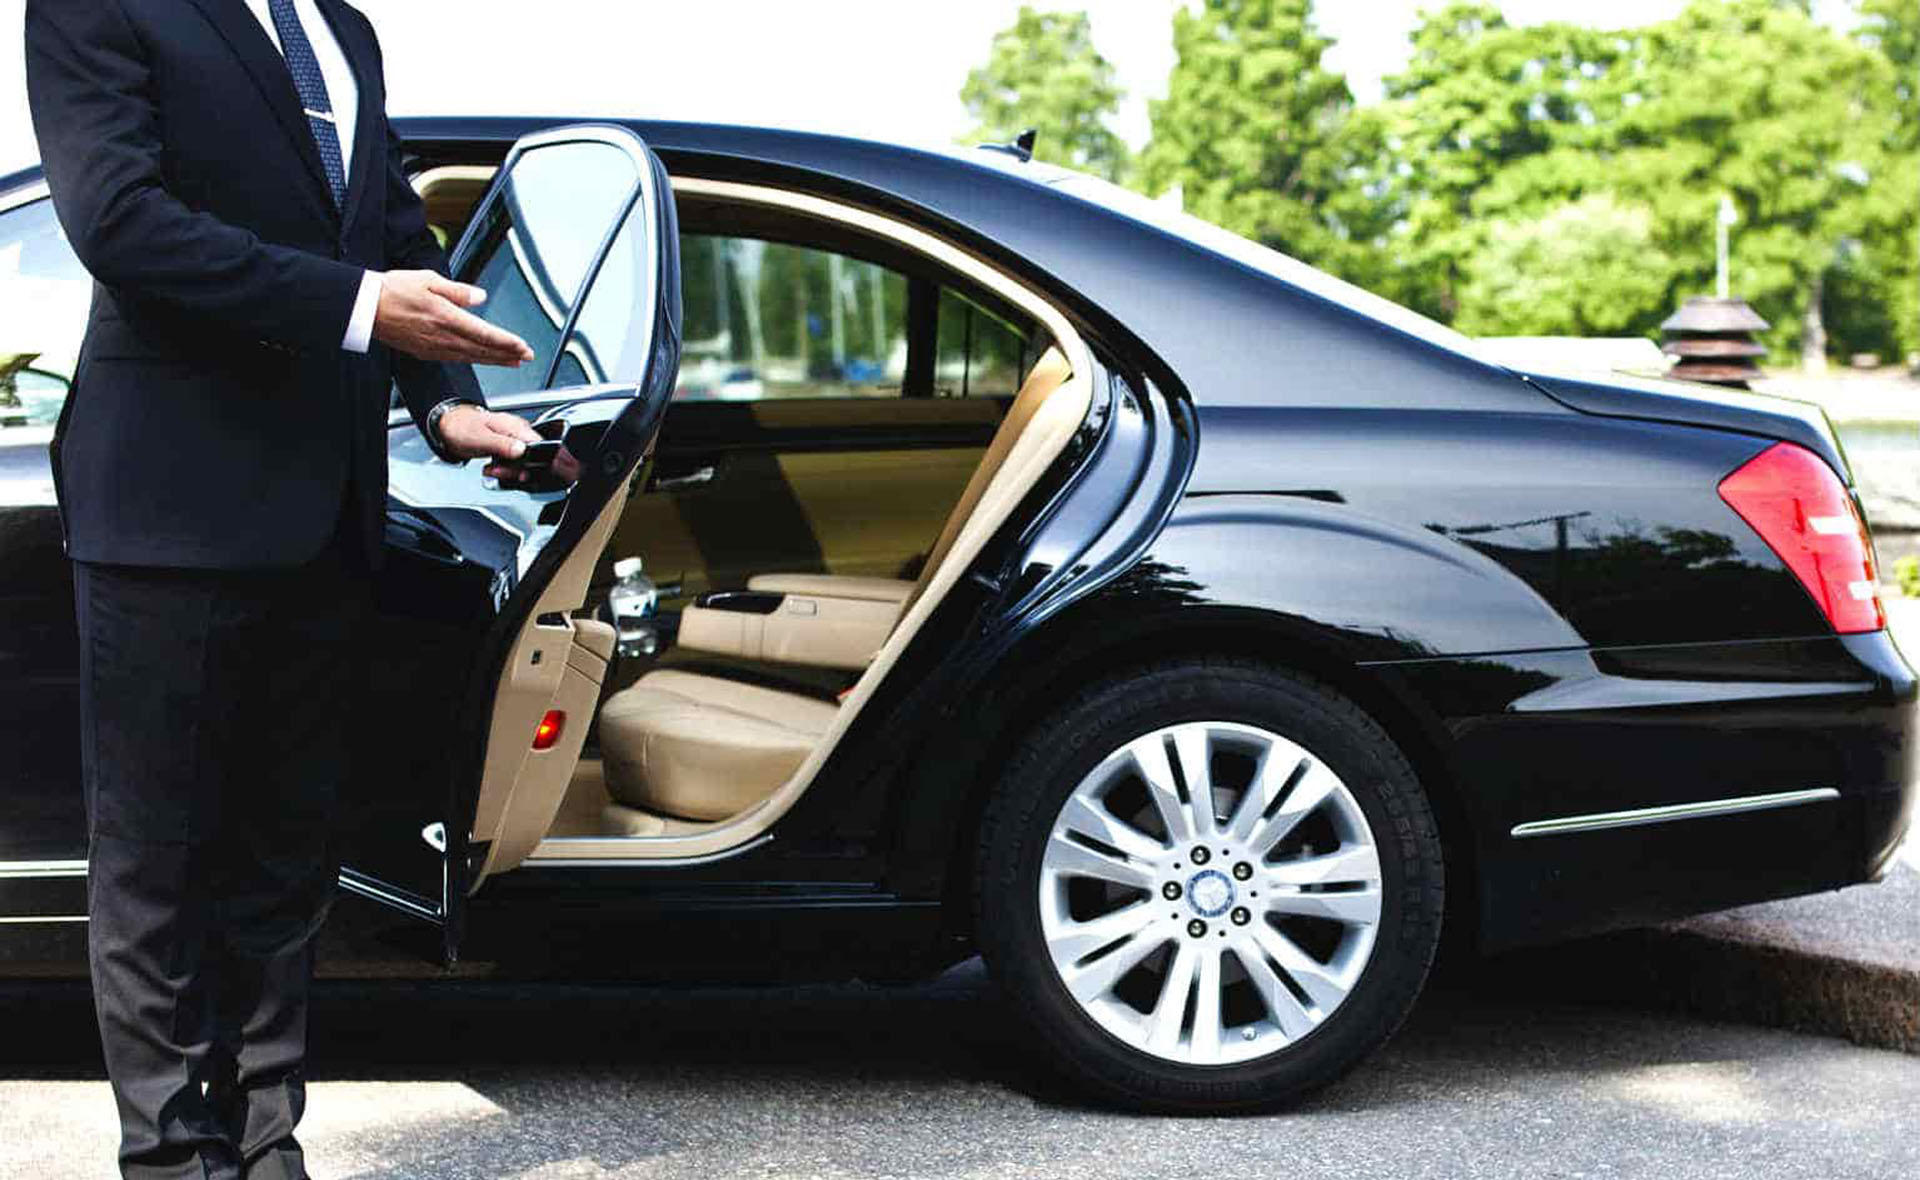 Transporting Foreign Visitors In Limousines